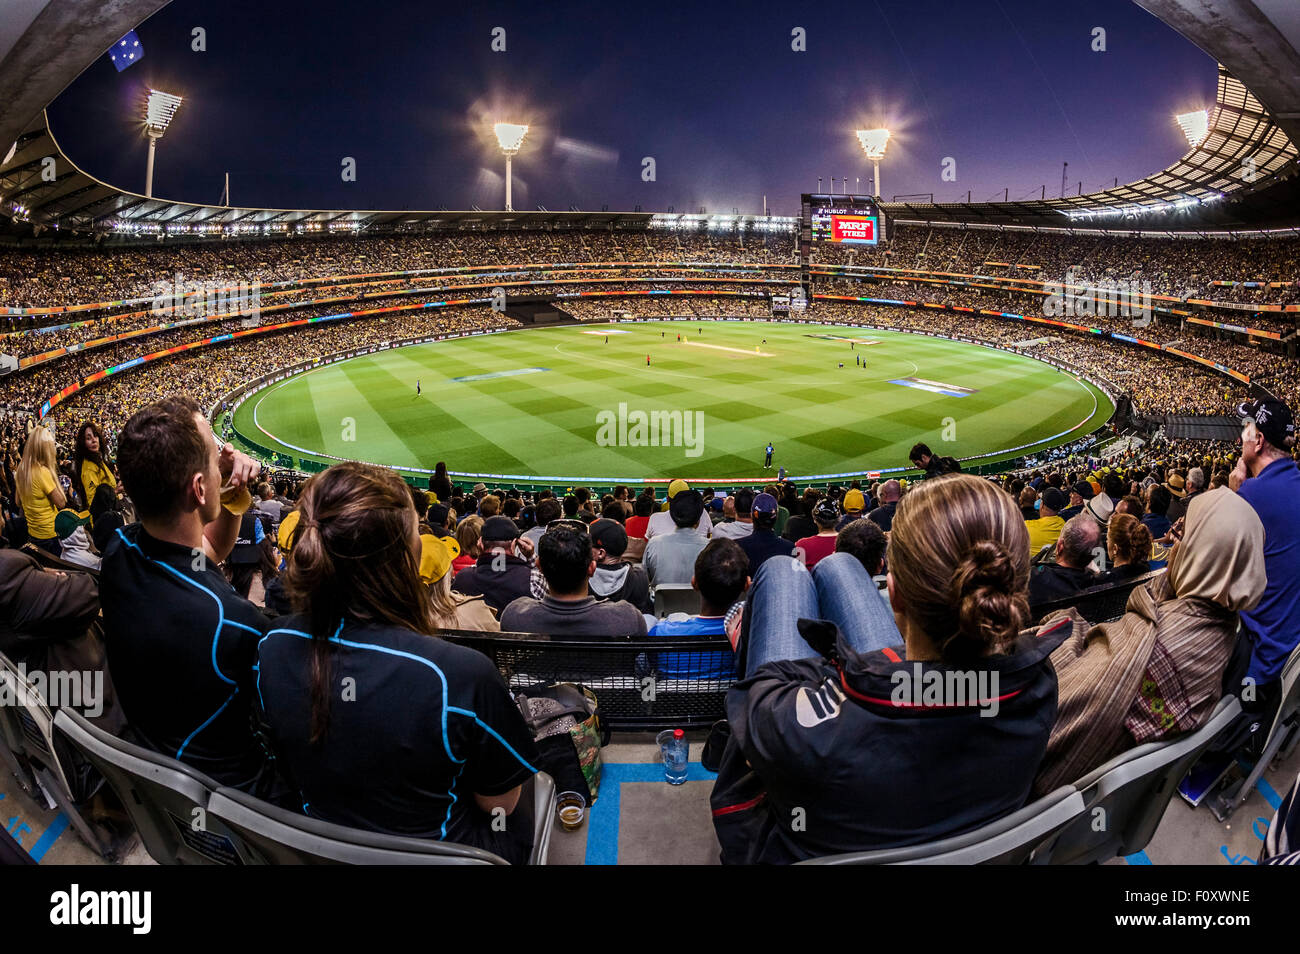 Wide shot of the entire MCG stadium at the final of the ICC Cricket World Cup 2015 at the Melbourne Cricket Ground - Stock Image